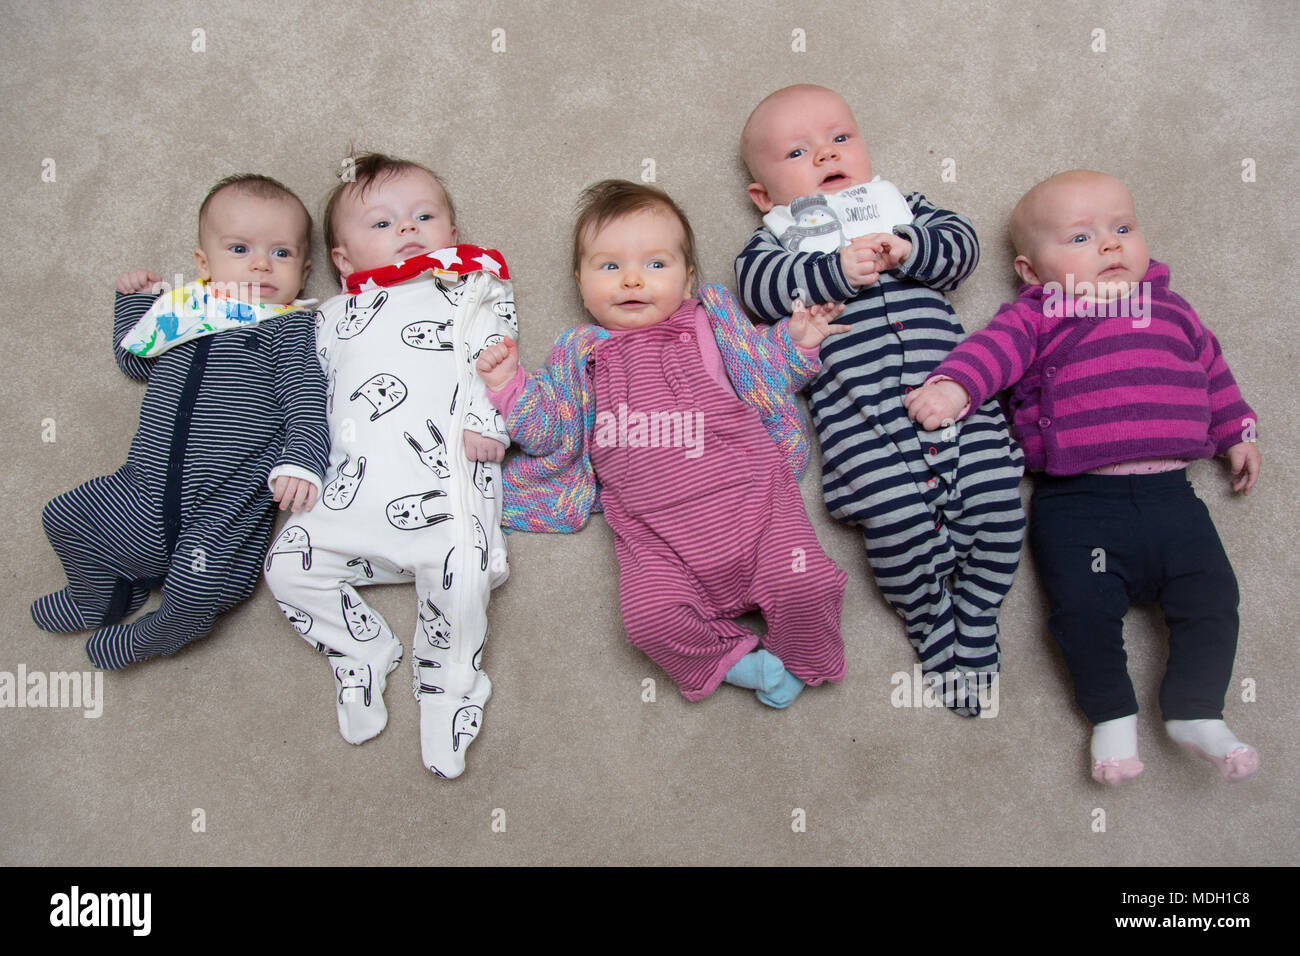 group of cute babies - Stock Image